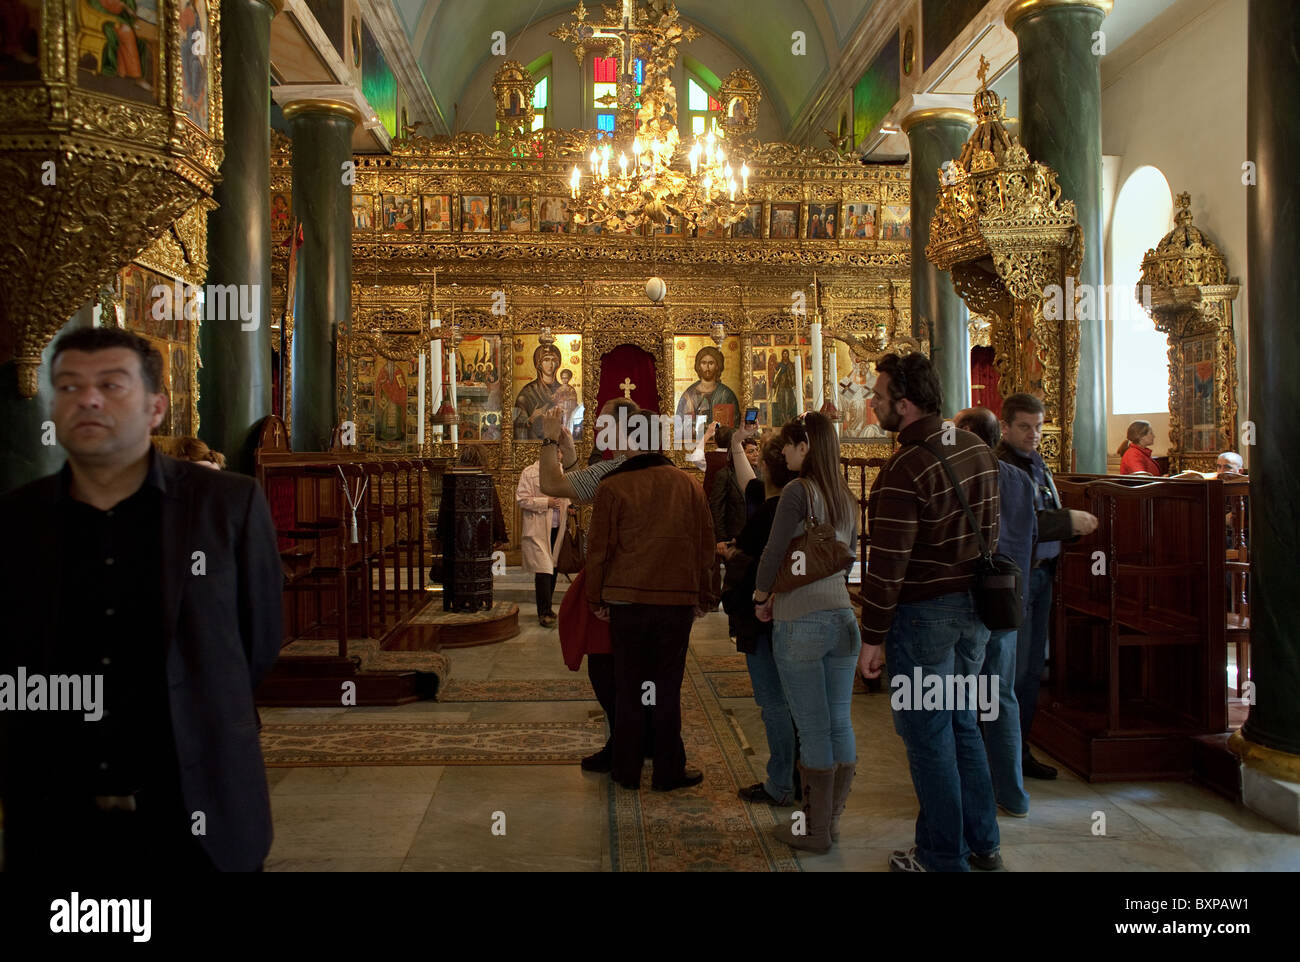 Group of visitors in the Church of the Holy Trinity, Heybeliada, Turkey - Stock Image